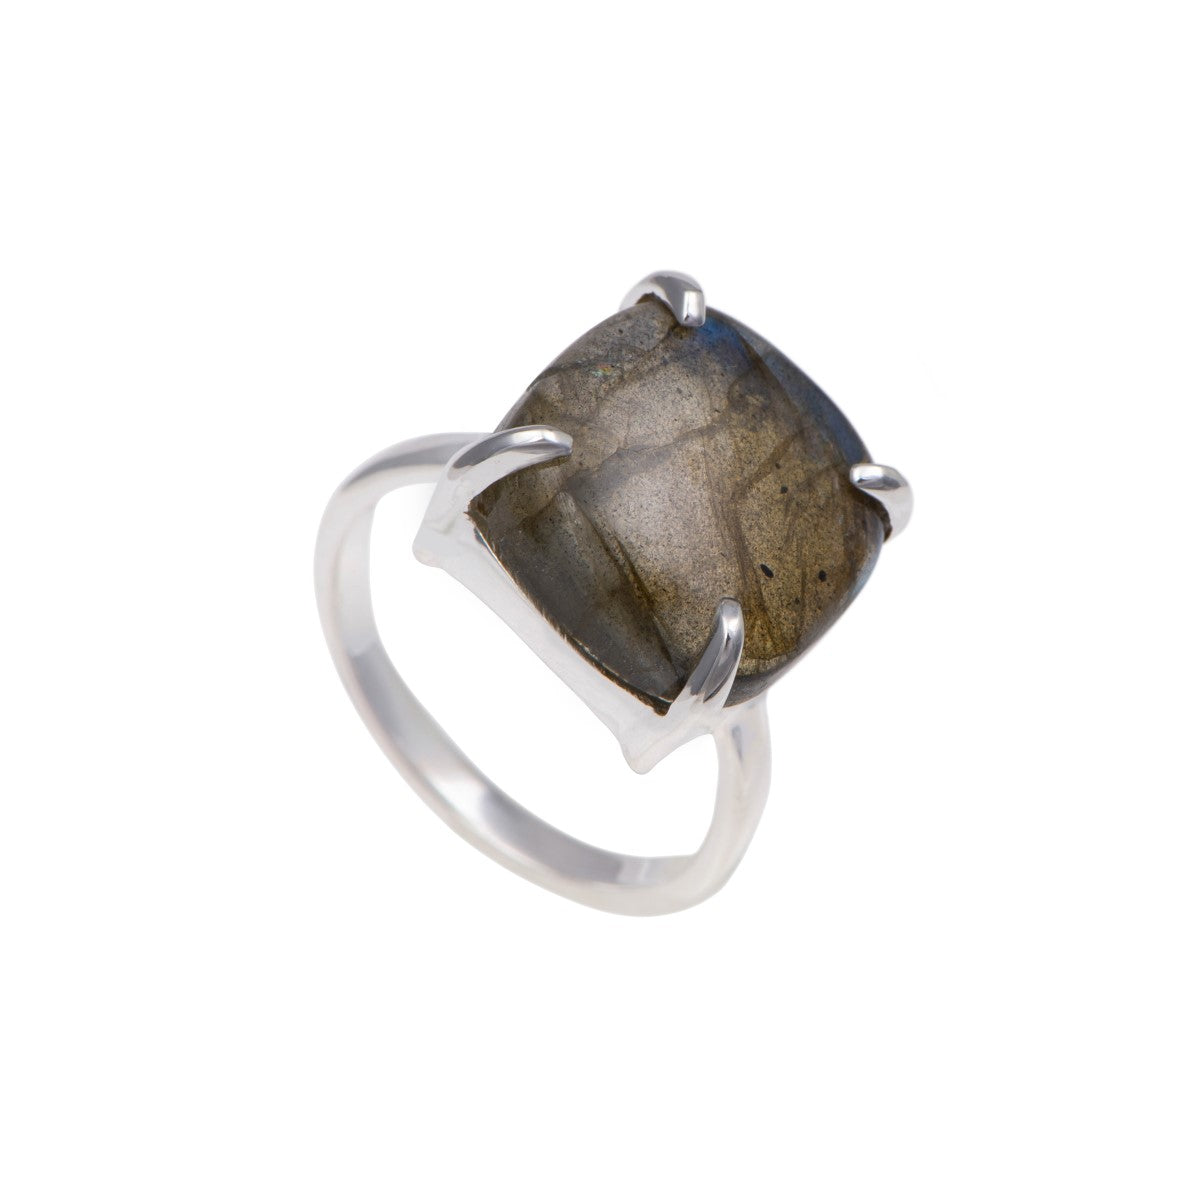 Square Cabochon Labradorite Ring in Sterling Silver